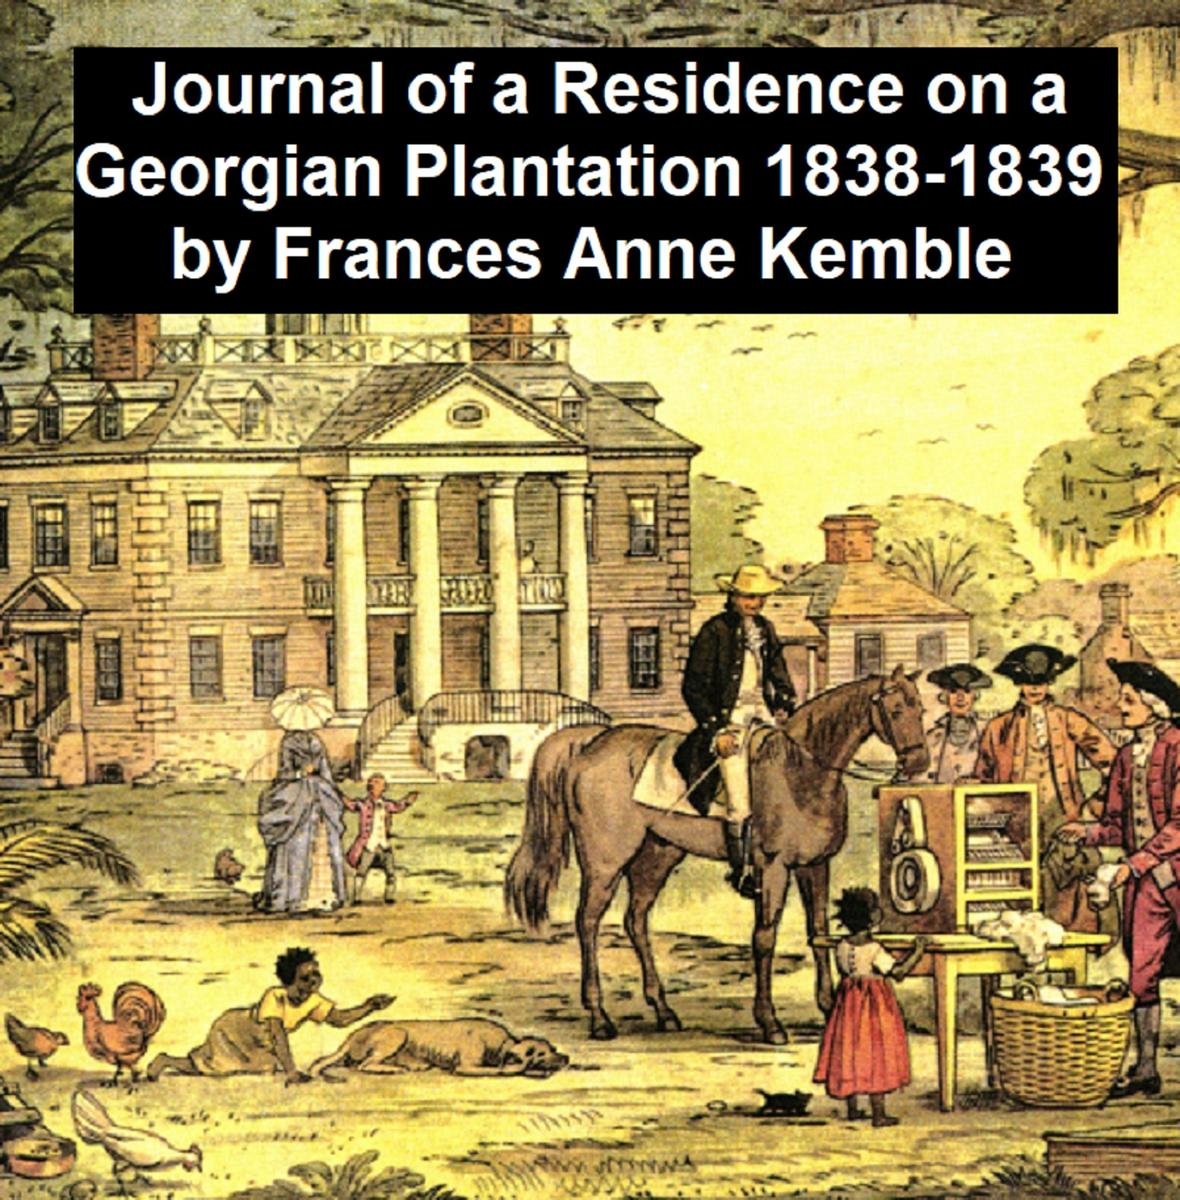 Journal of a Residence on a Georgian Plantation 1838-1839 - eBook